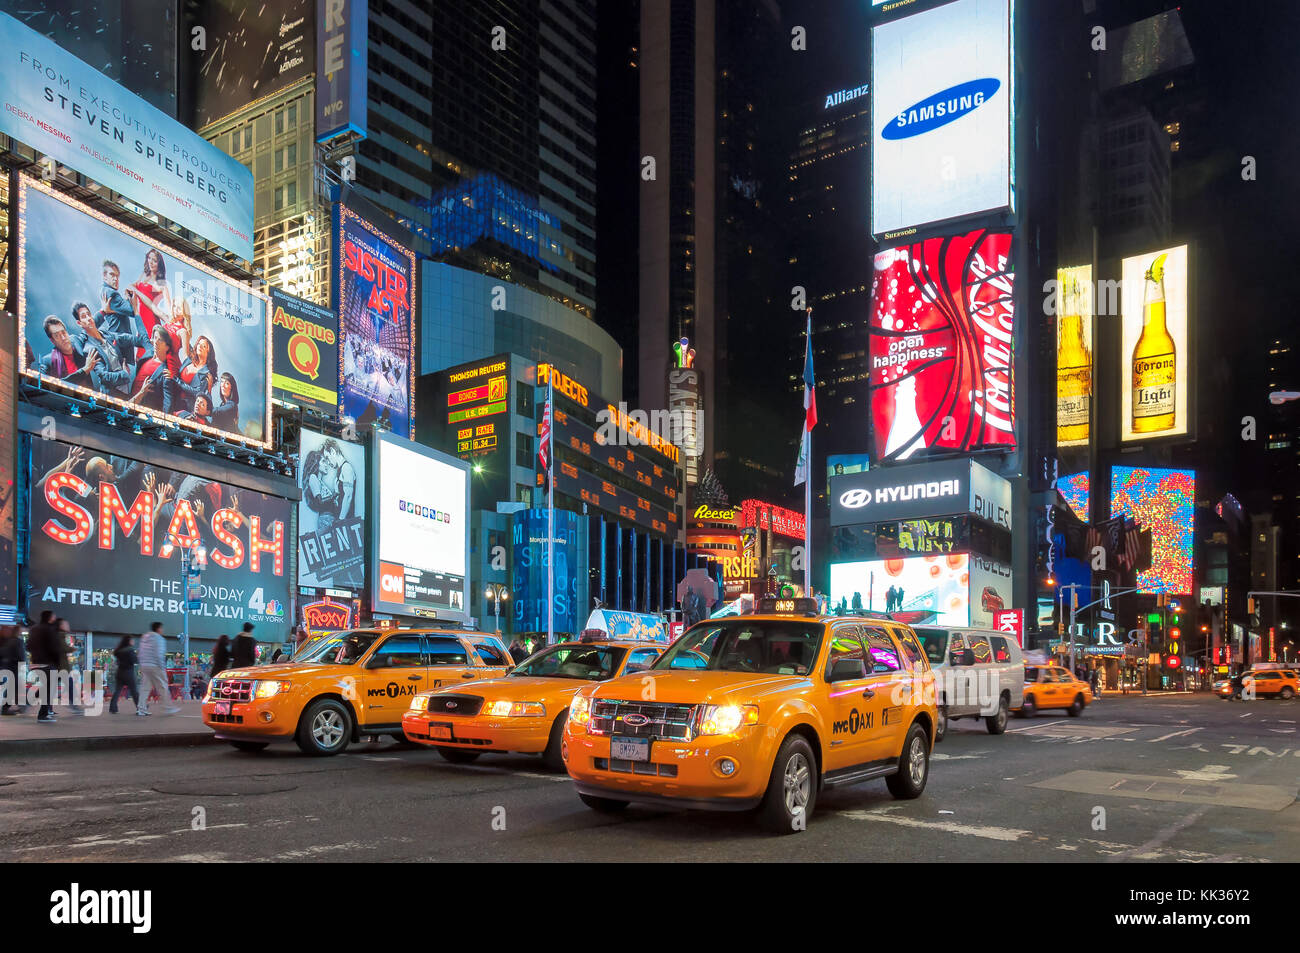 Traffic in Times Square, New York City - Stock Image